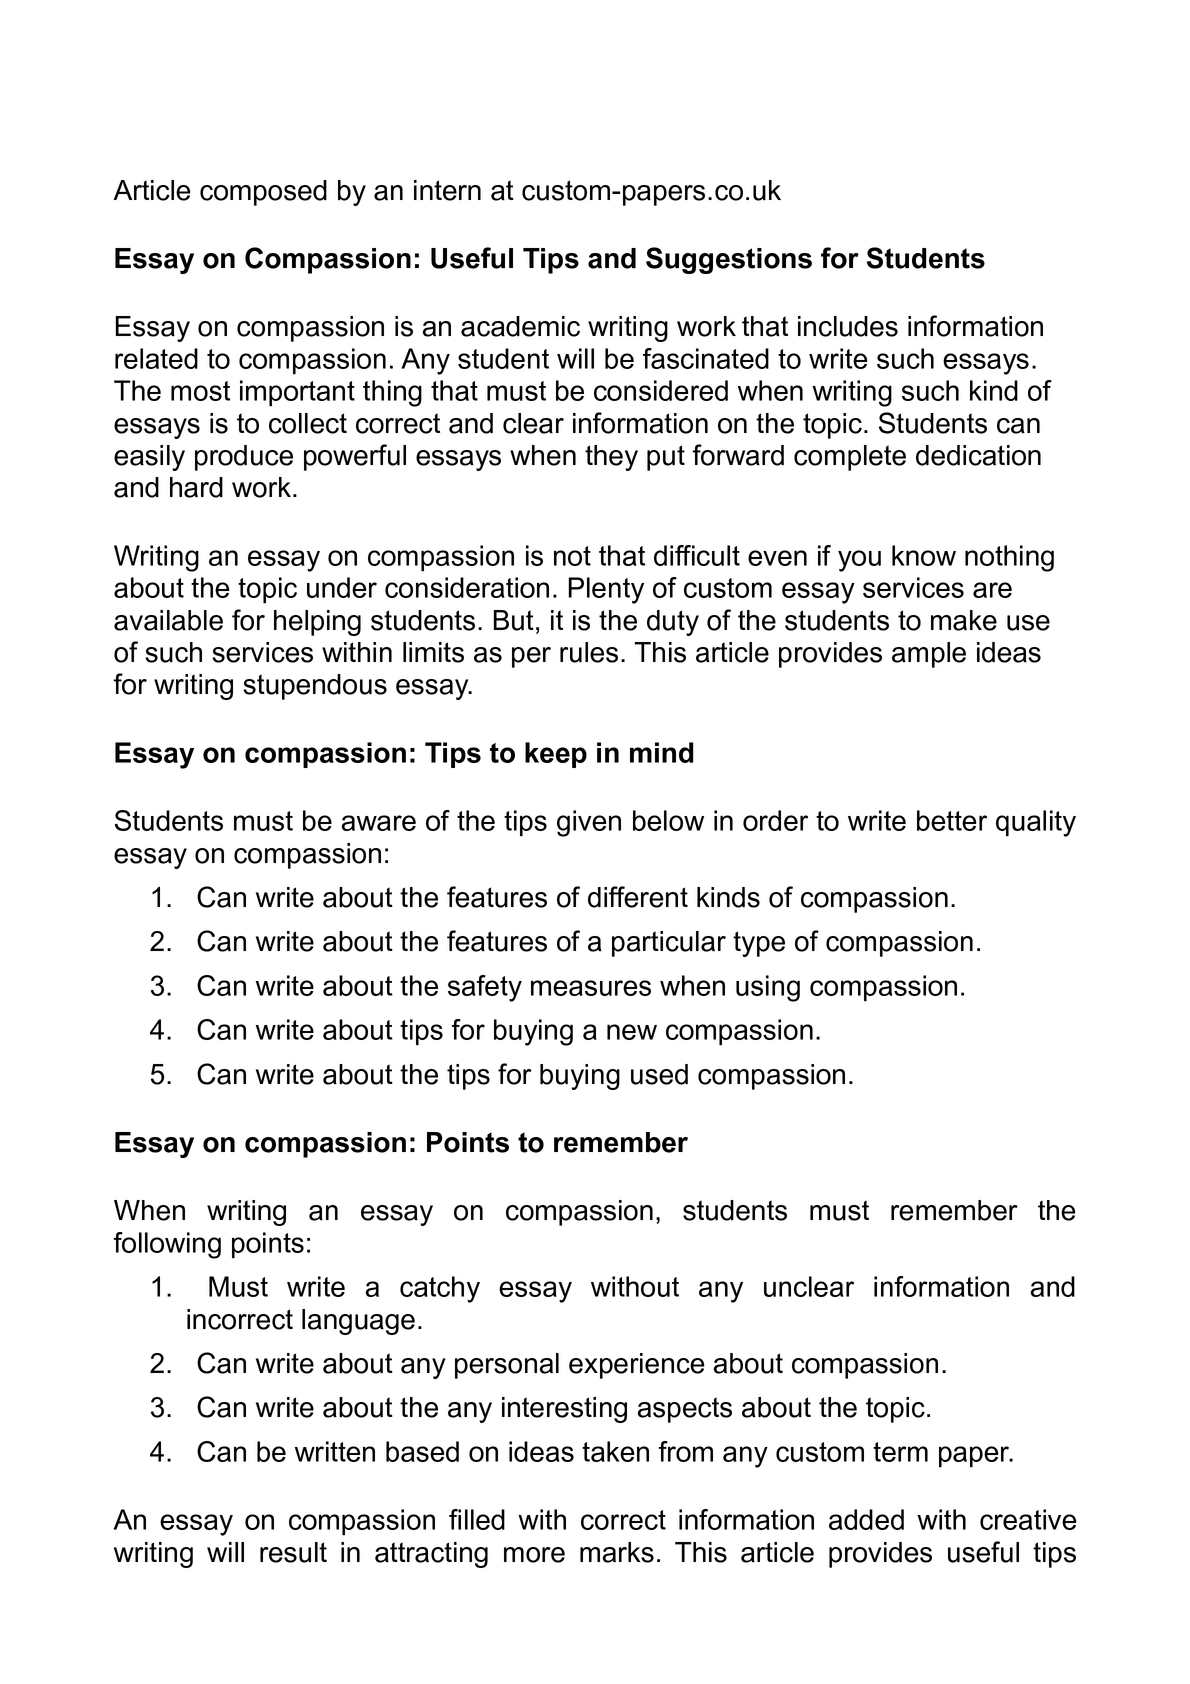 essay on compassion useful tips and suggestions for  essay on compassion useful tips and suggestions for students